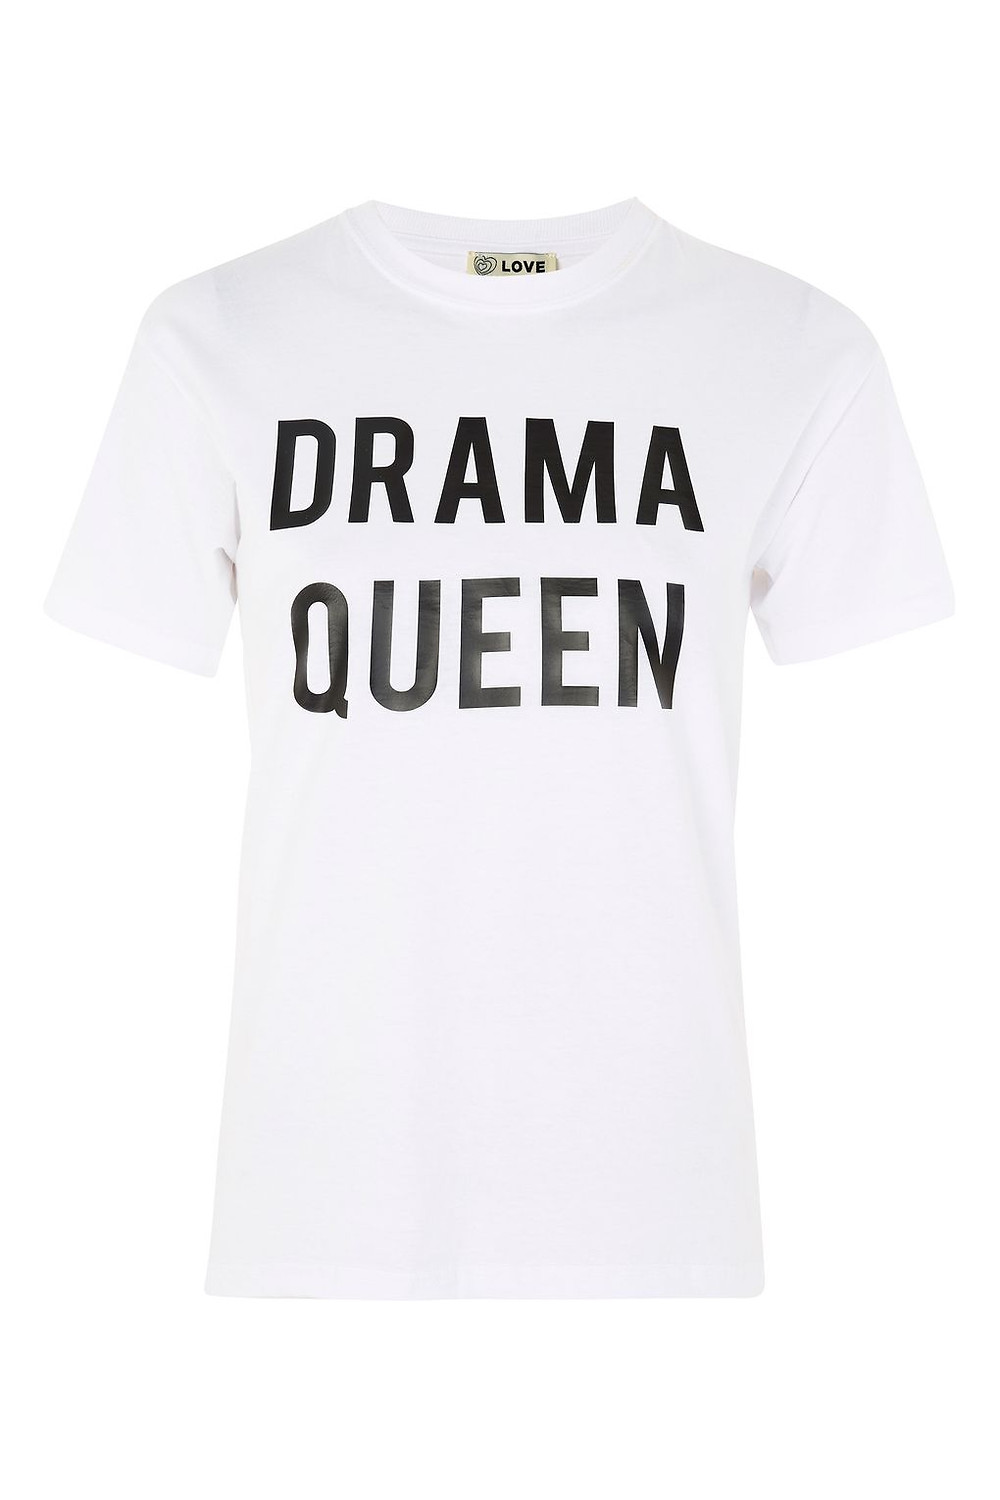 Top Shop t-shirt